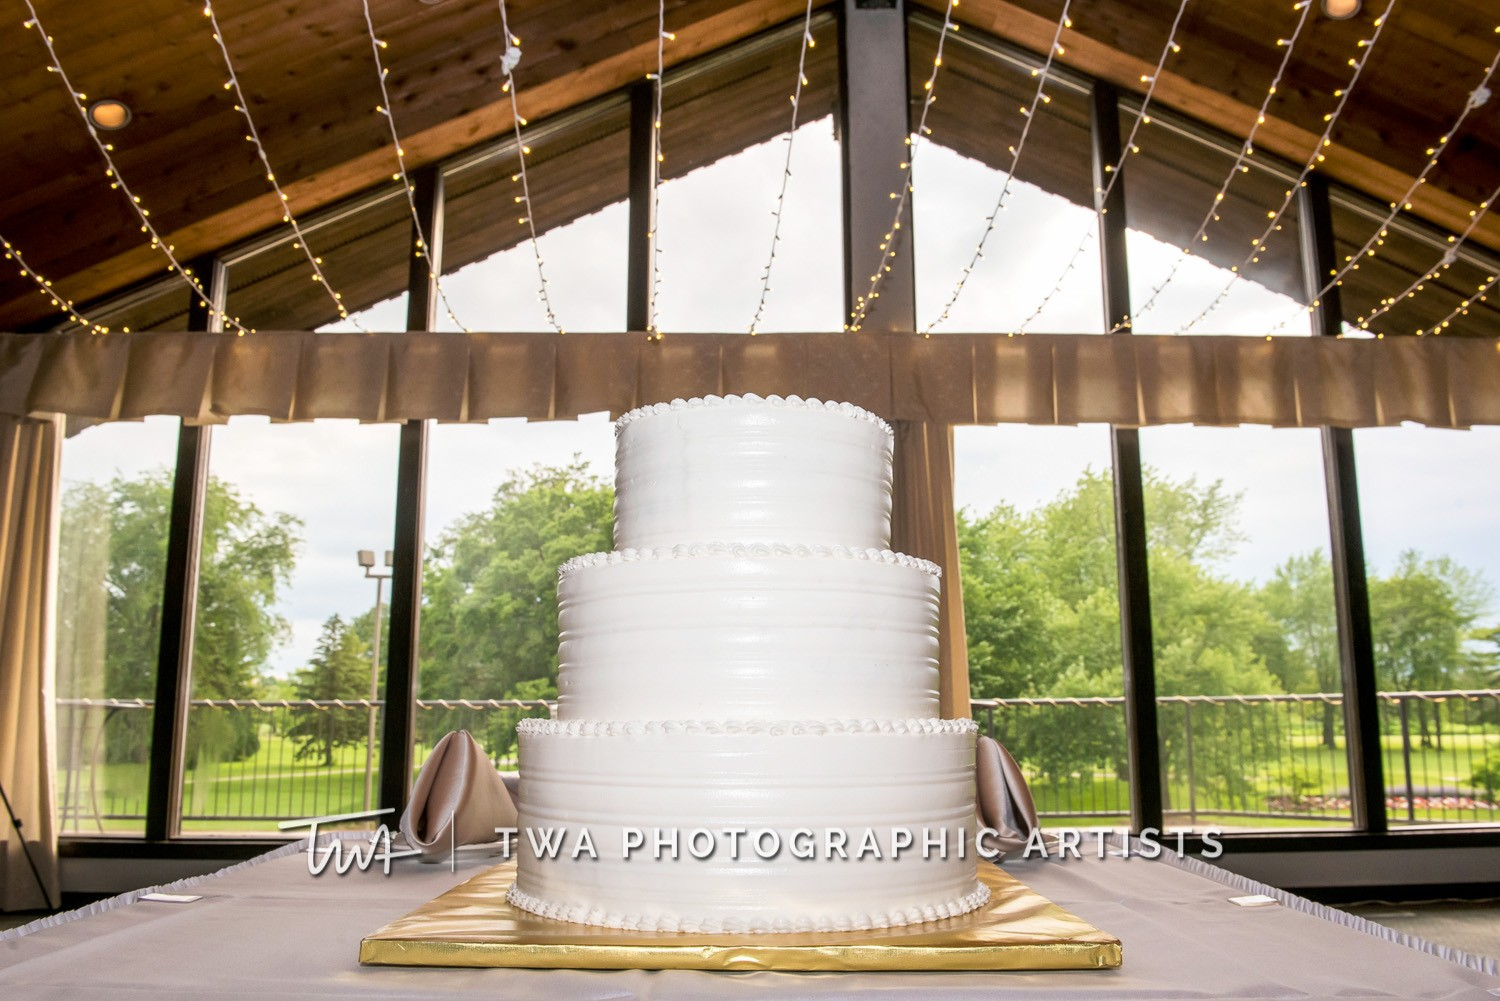 Chicago-Wedding-Photographer-TWA-Photographic-Artists-White-Pines-Banquets_Petersen_Sherman_ZZ_DL-058_0572